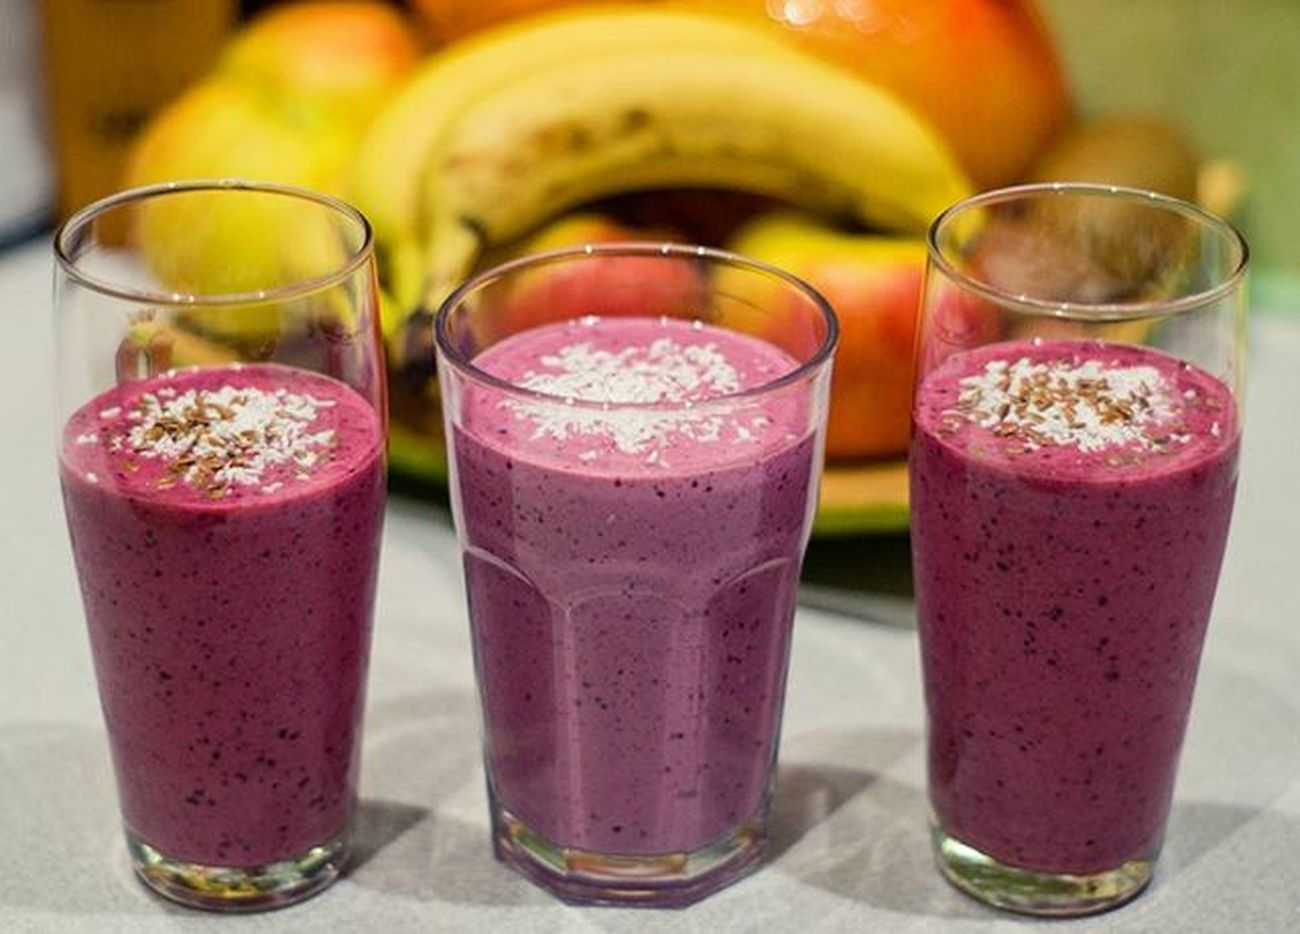 Tego mi było trzeba😊🍇🍌🍓 Shake Koktajl Smoothie Coctail Healthy Drink Bananas Strawberry Owoce Lesné Kokosy Coconut Siemielniane Delicious Freshfruits Yummy With My Boy Poland Monday Fruits Polishgirl Homesweethome Instadrink fithomelikeforlikel4lf4f